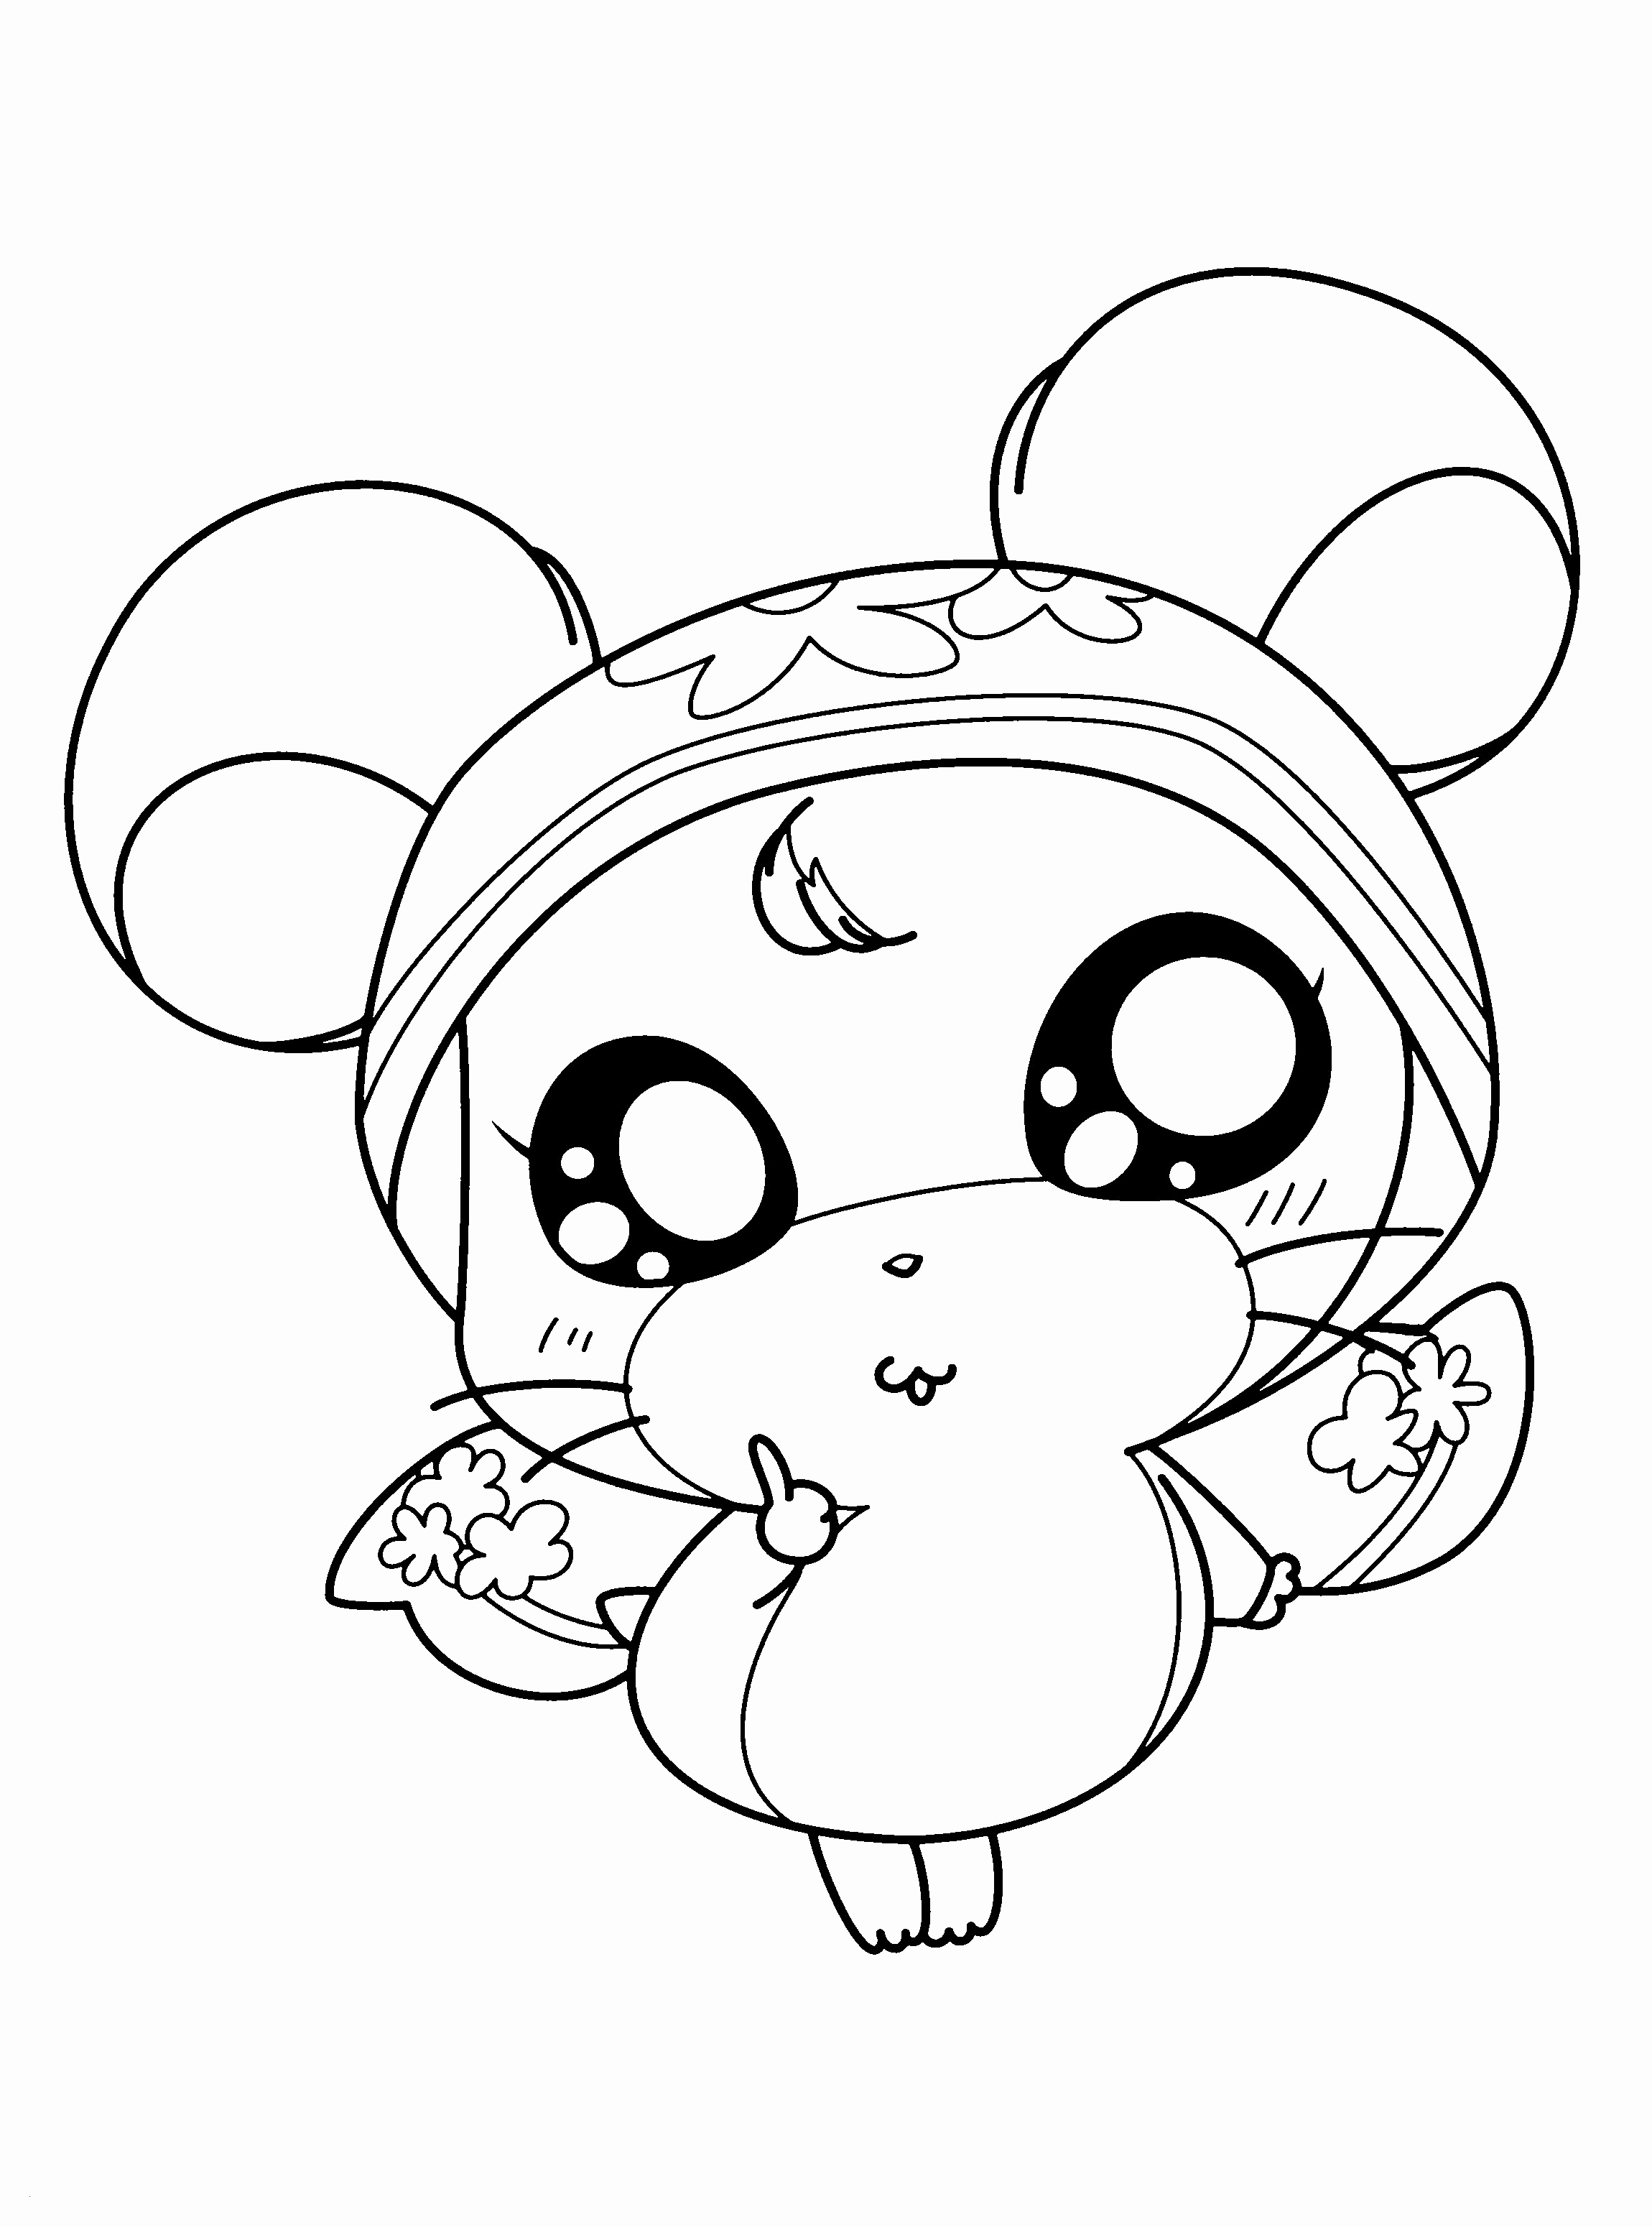 girl scout coloring pages cookies Collection-Girl Scouts Coloring Pages for Daisies Beautiful Girl Scout Coloring Pages Beautiful Printable Cds 0d – Fun Timecub 2-s